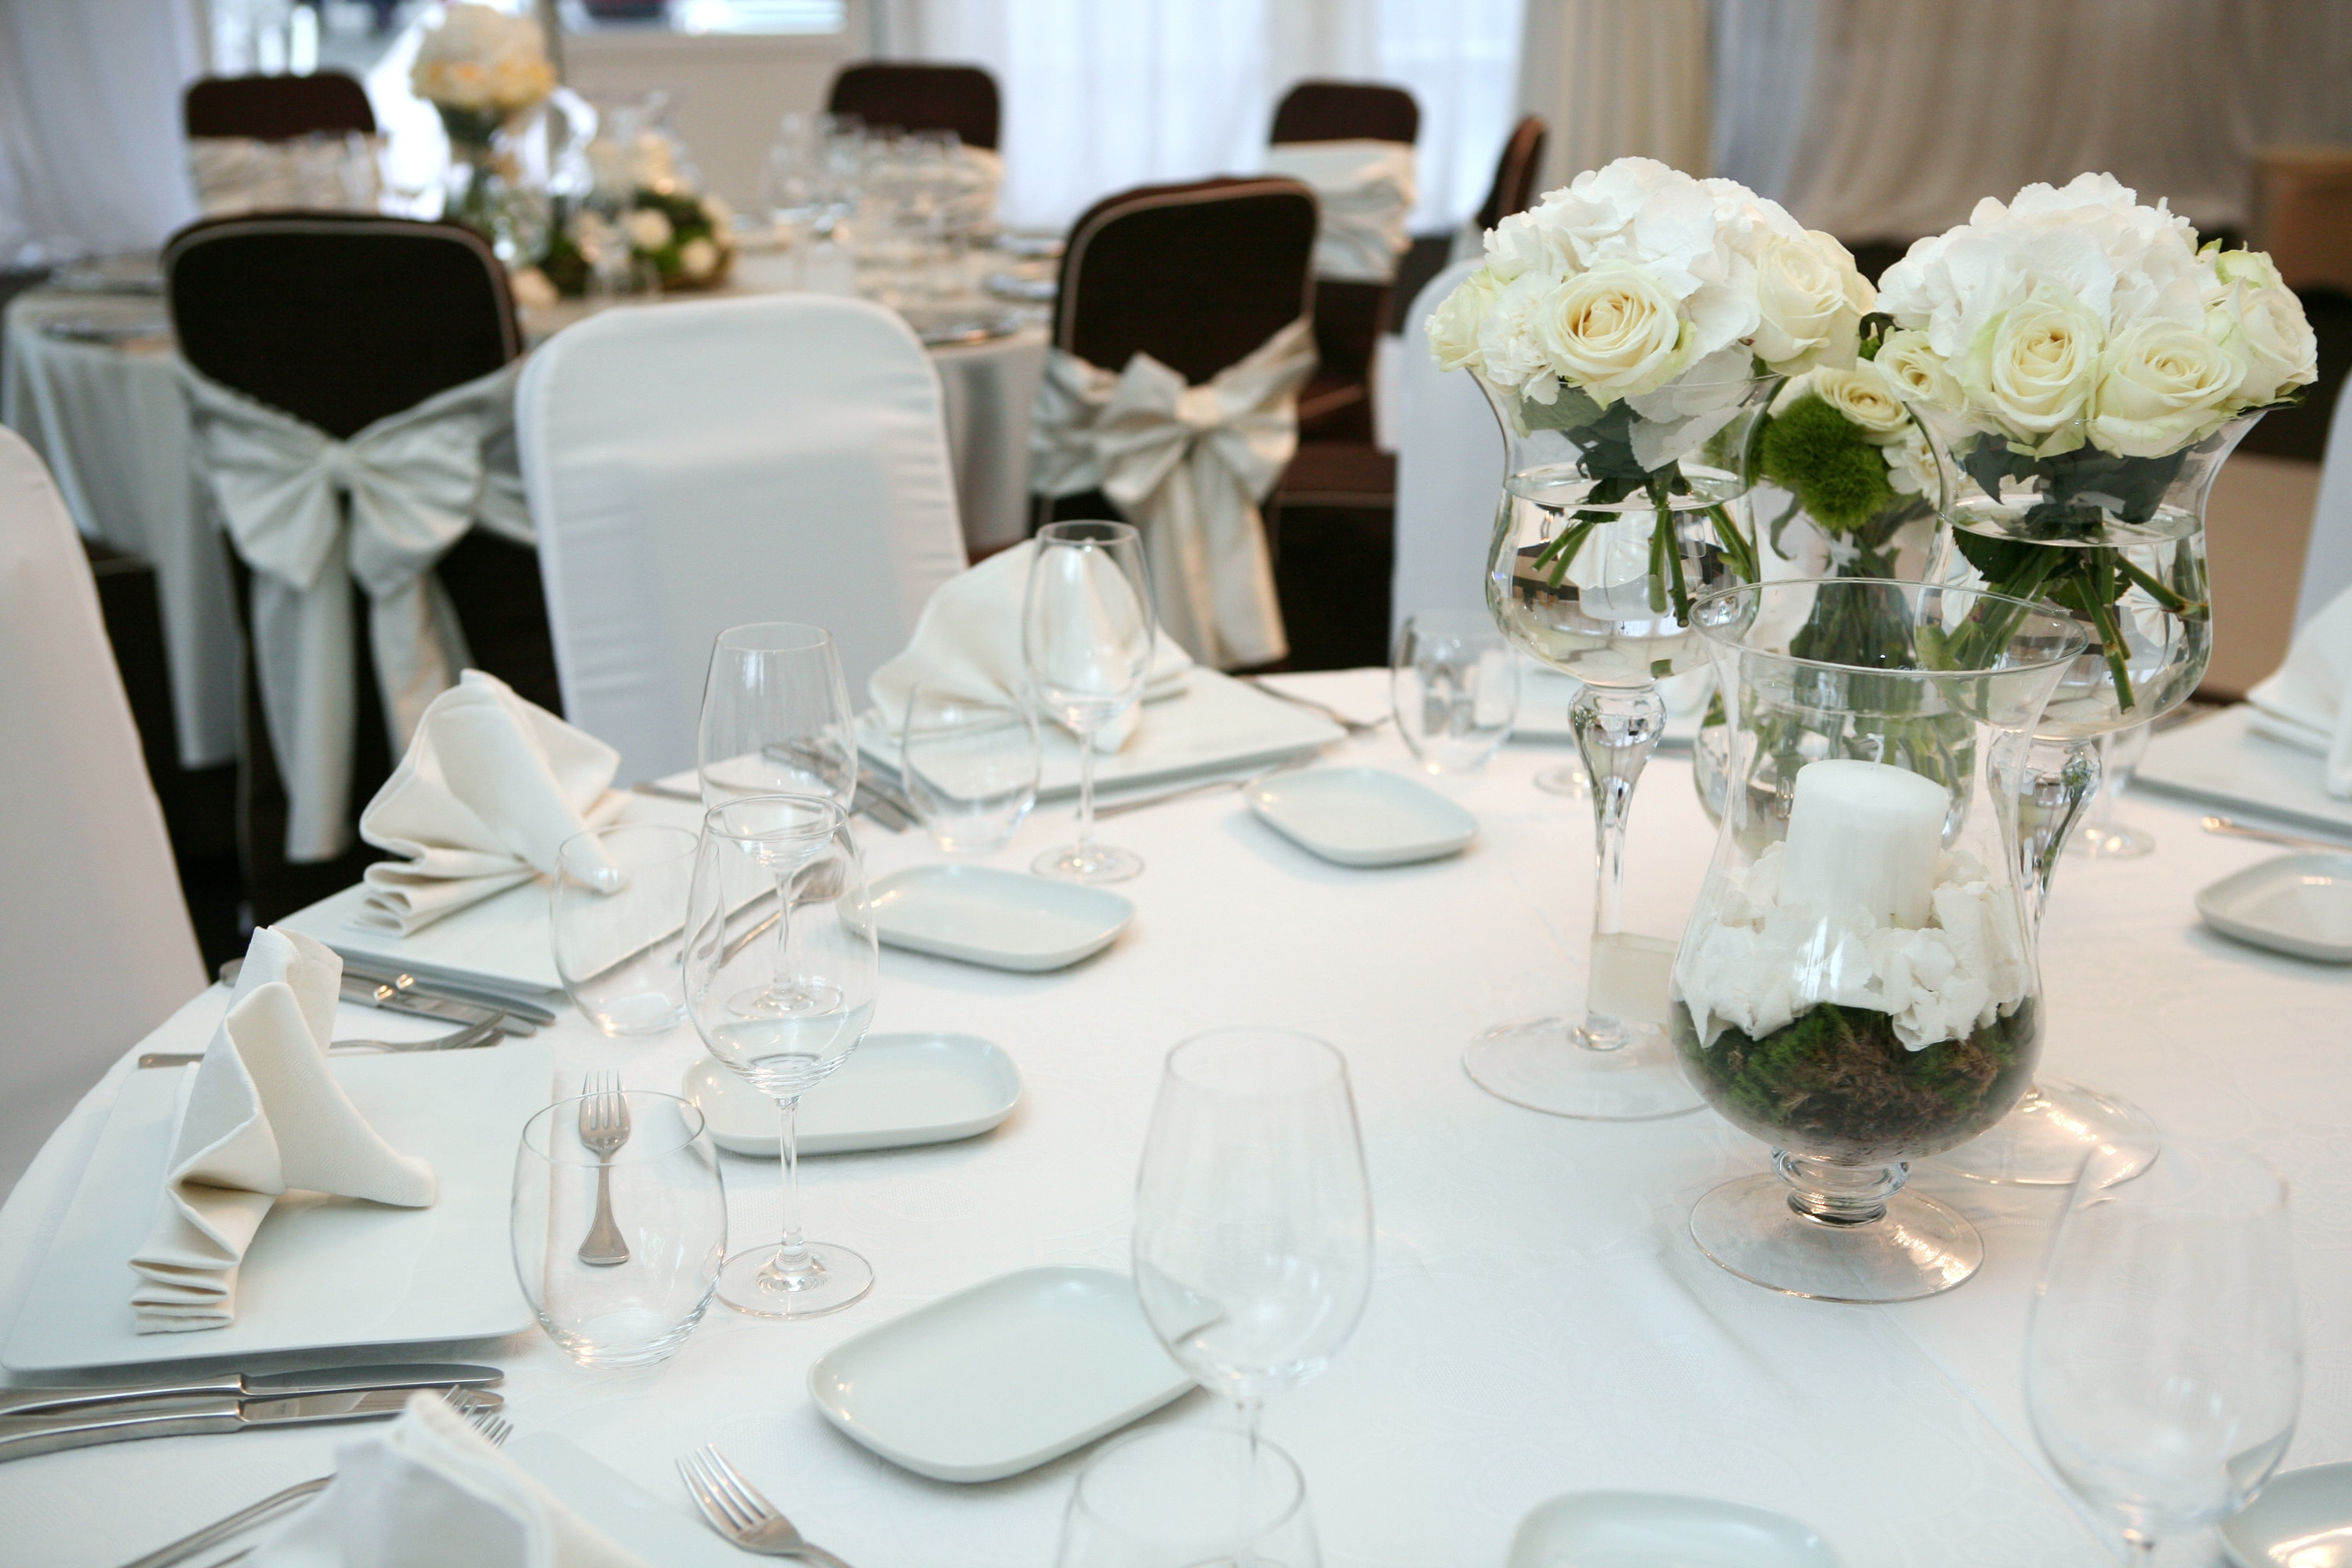 Table setting with silverware and floral arrangement